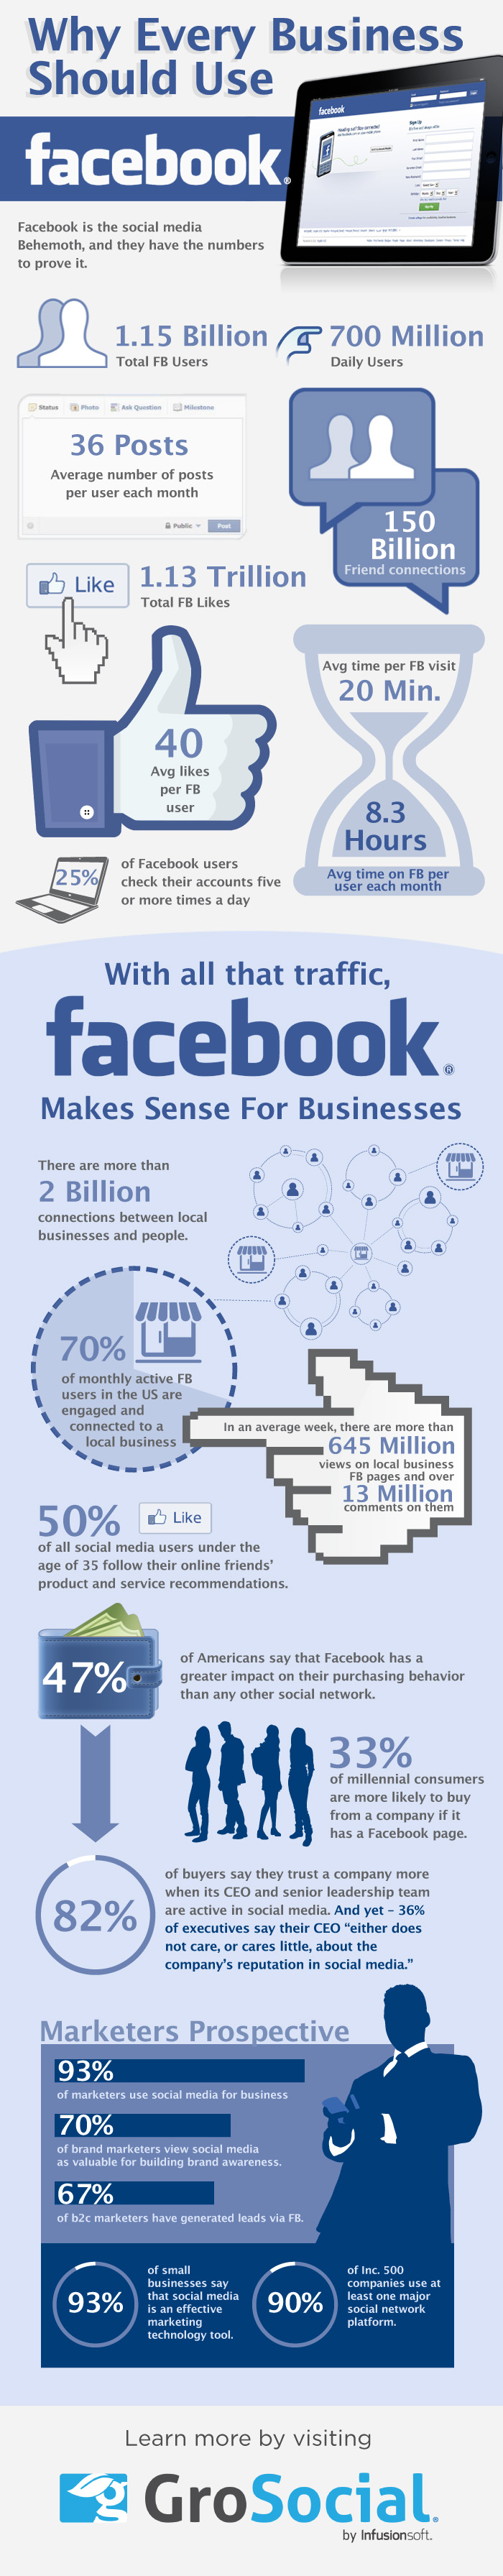 B2B companies need to use Facebook